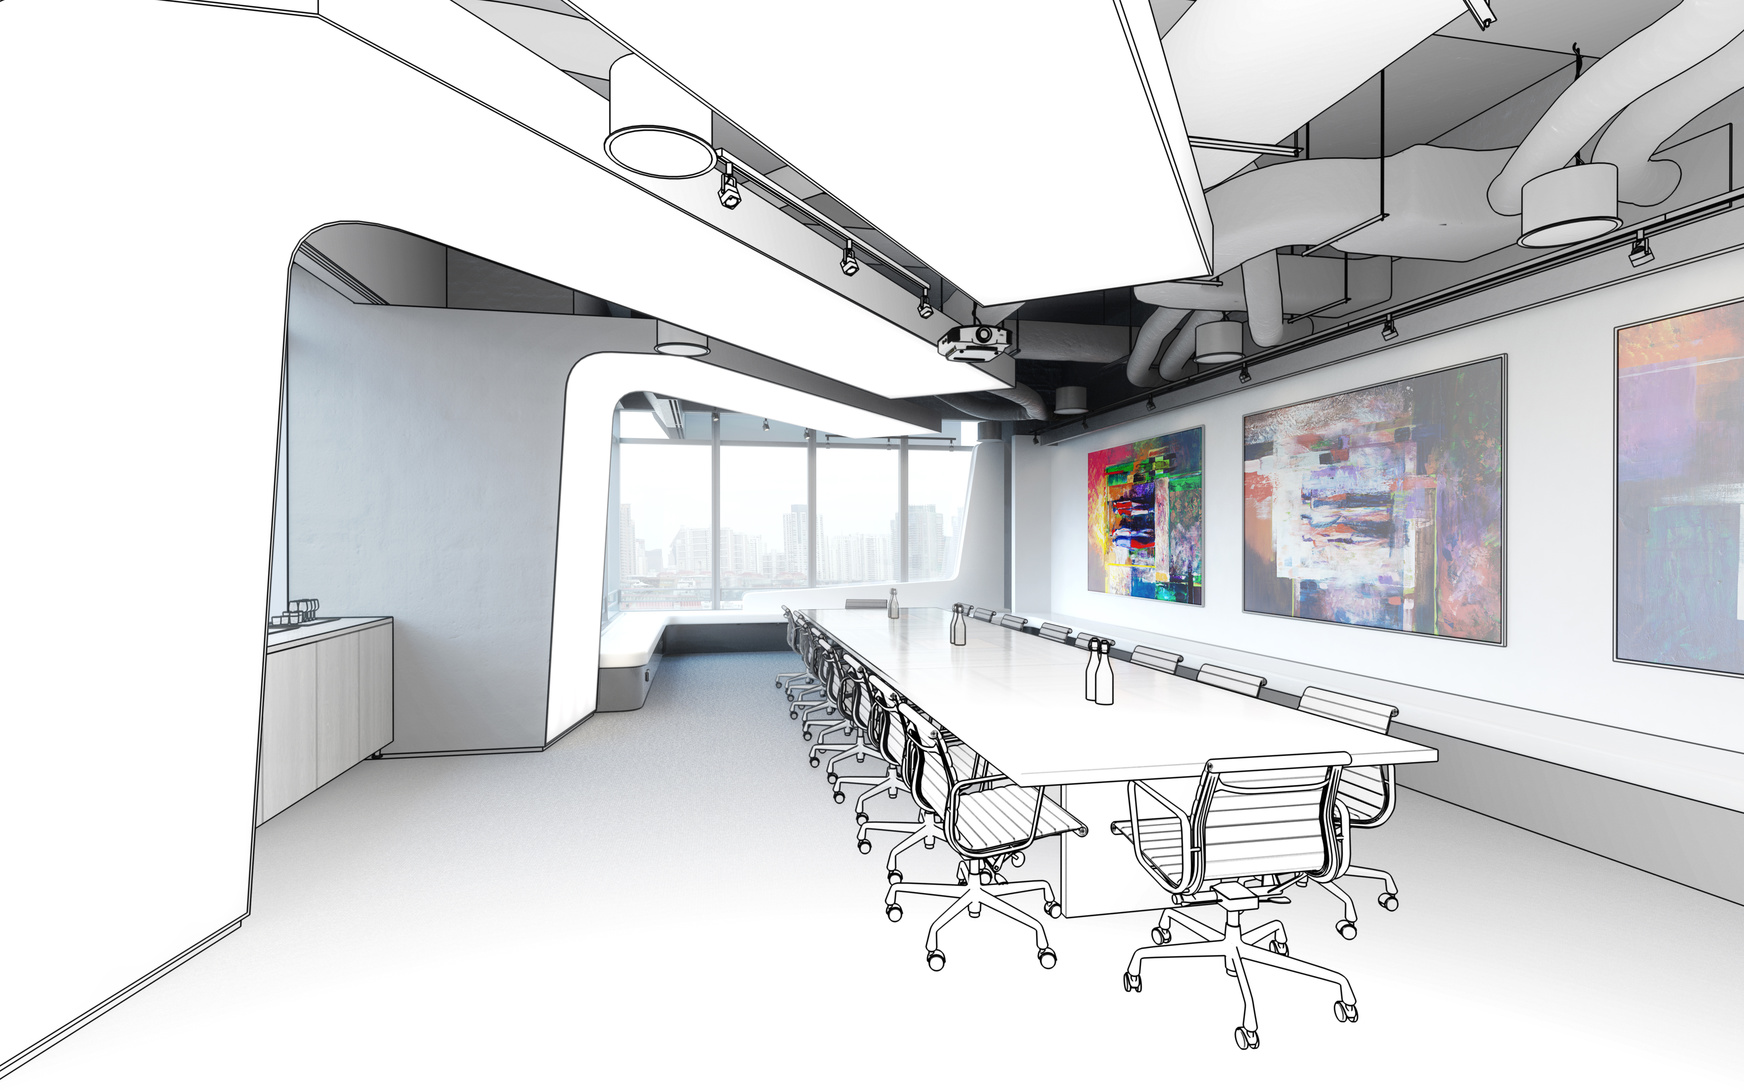 Meeting Room (draft)